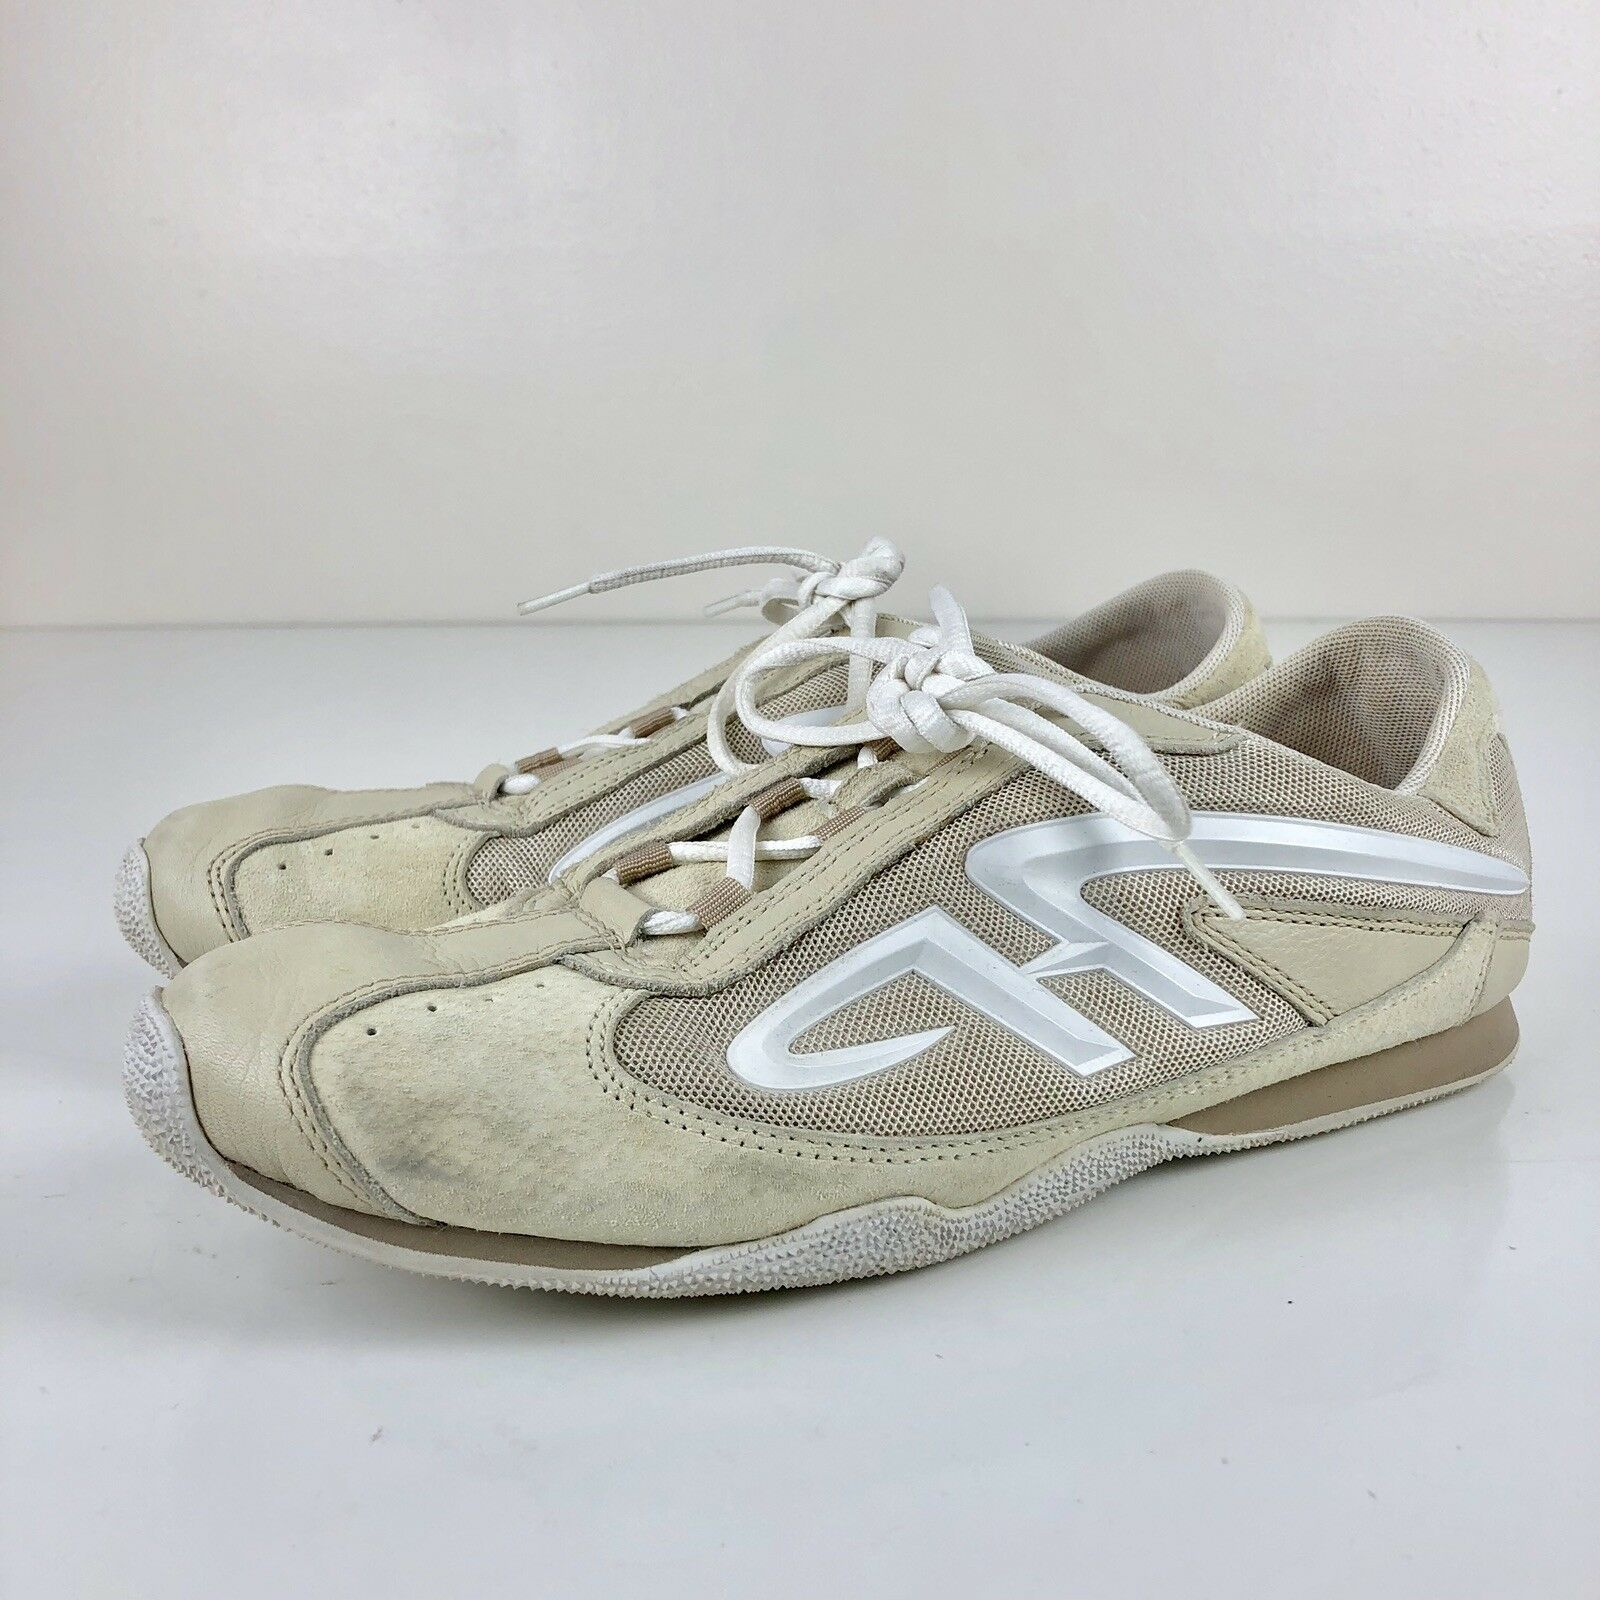 Hush Puppies Womens Casual Comfort Flats Walking Sneaker Athletic shoes Size 10